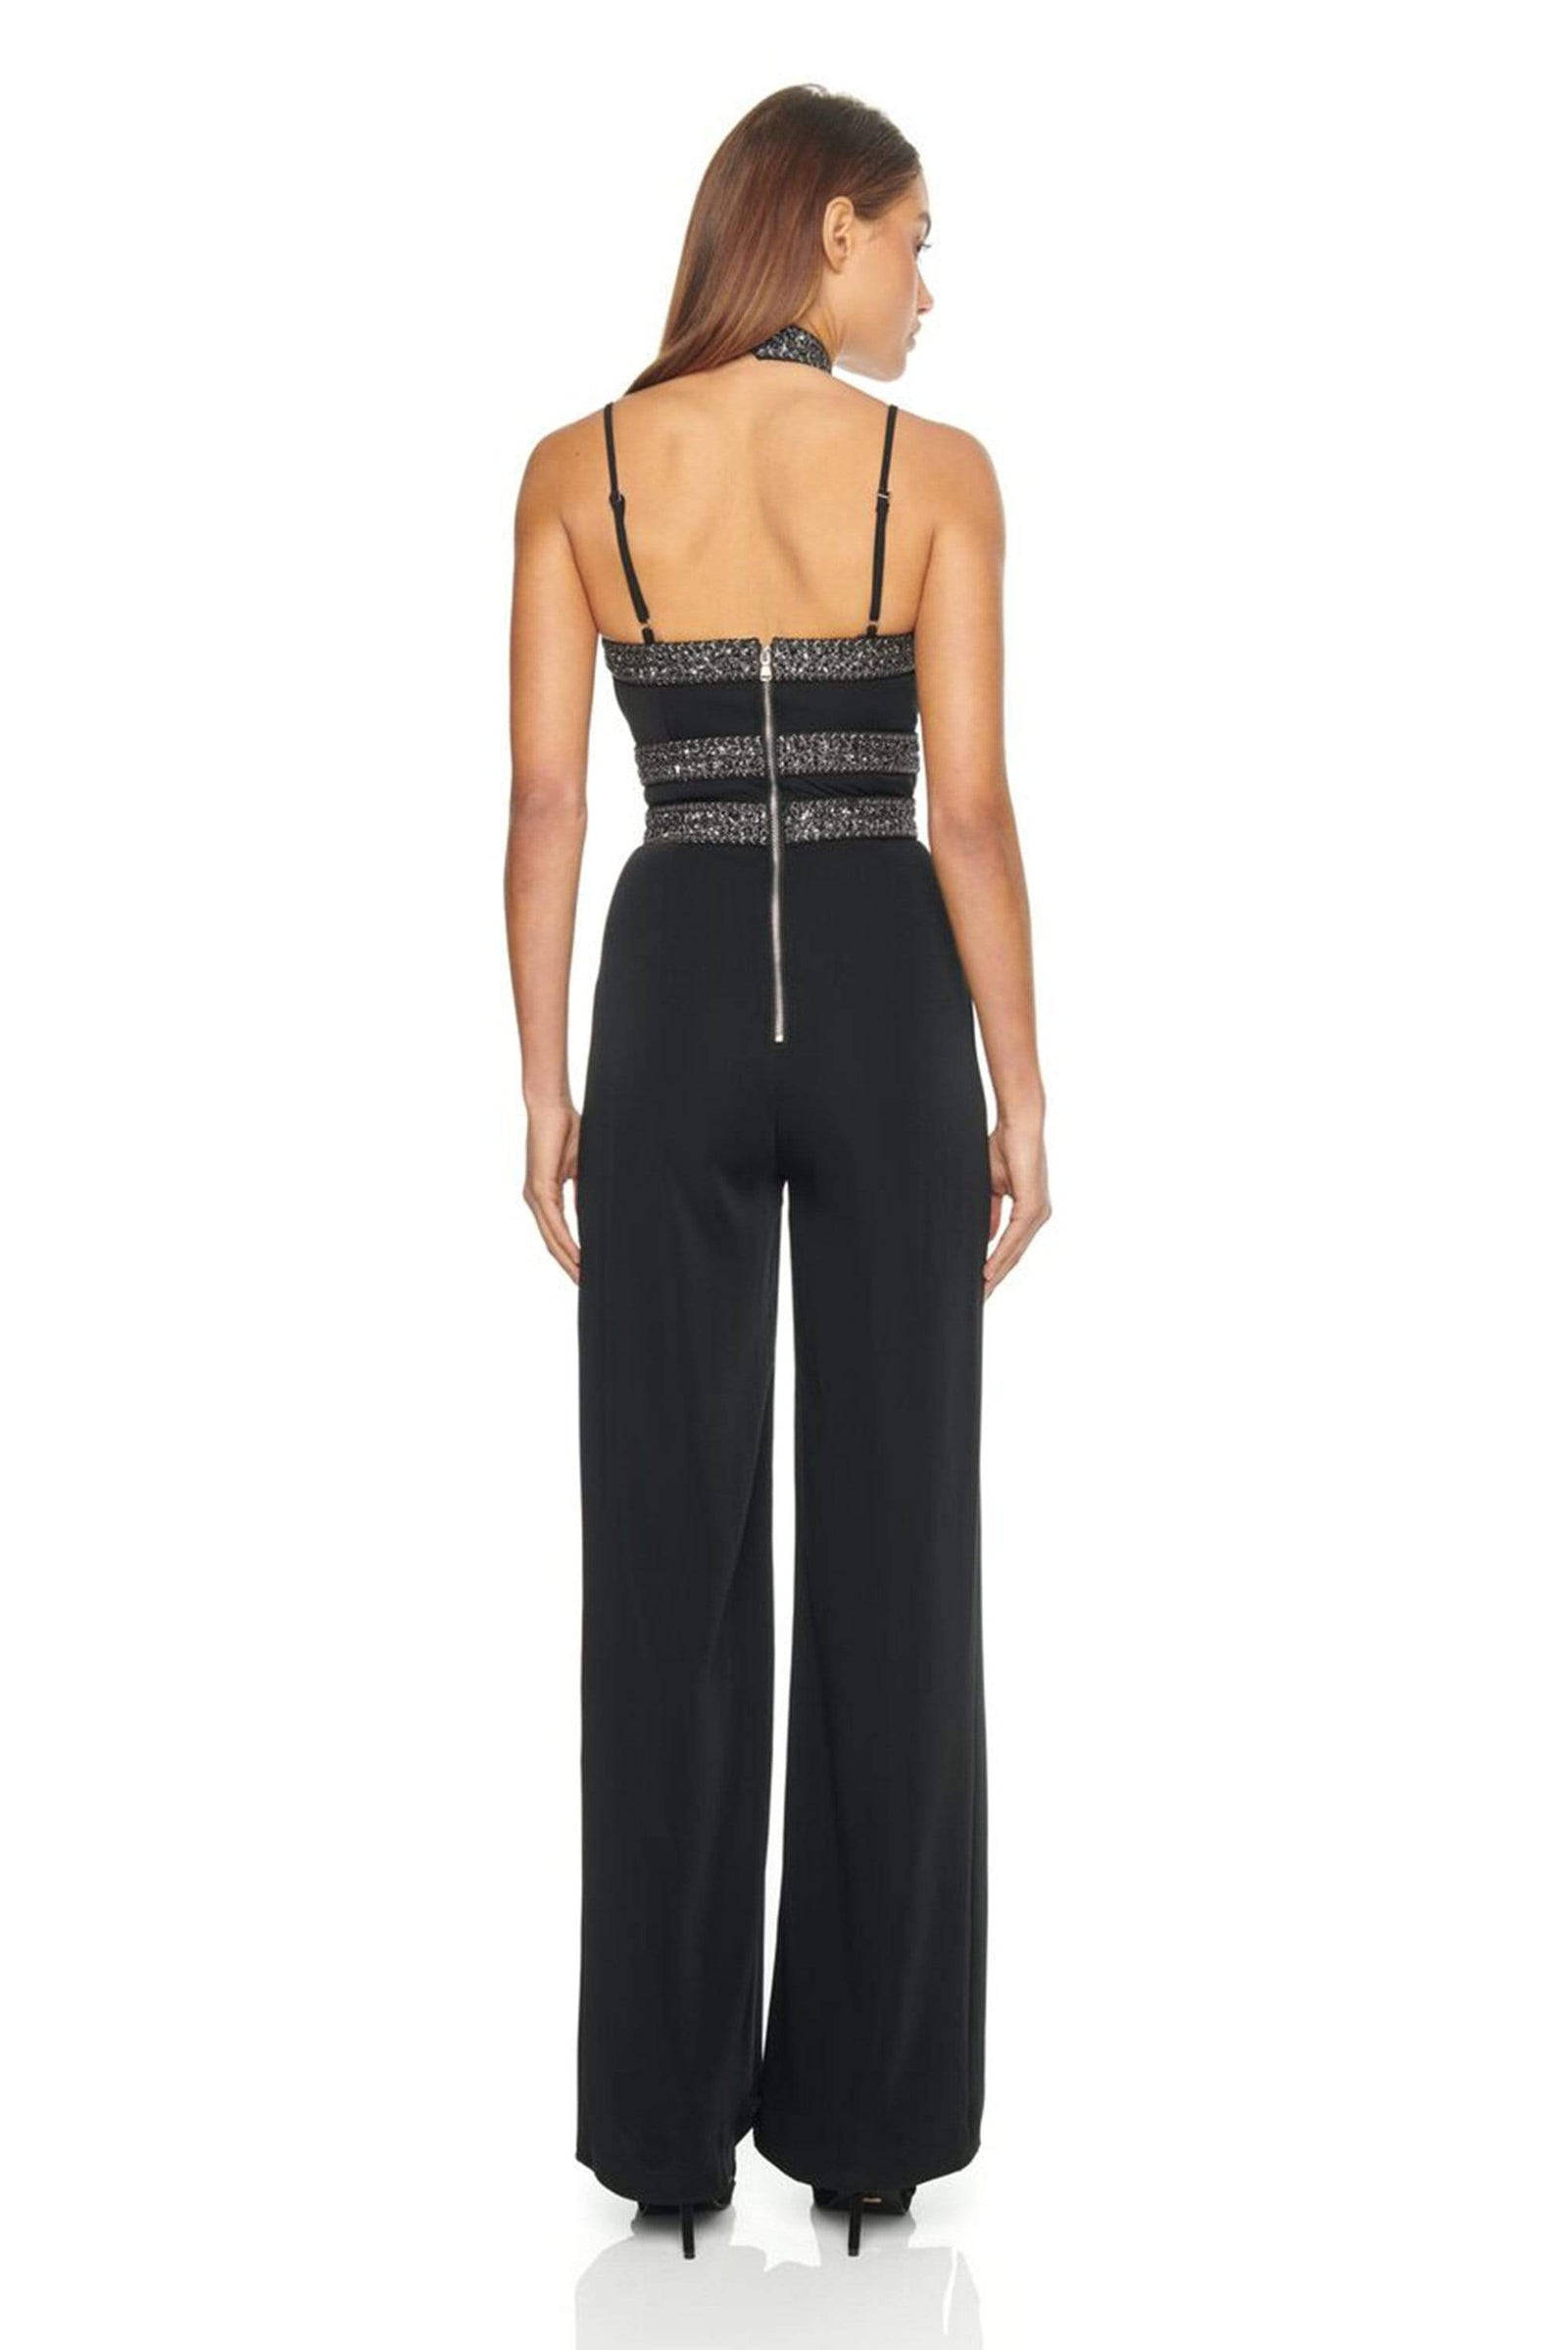 PARAMONT PANTSUIT - ELIYA THE LABEL